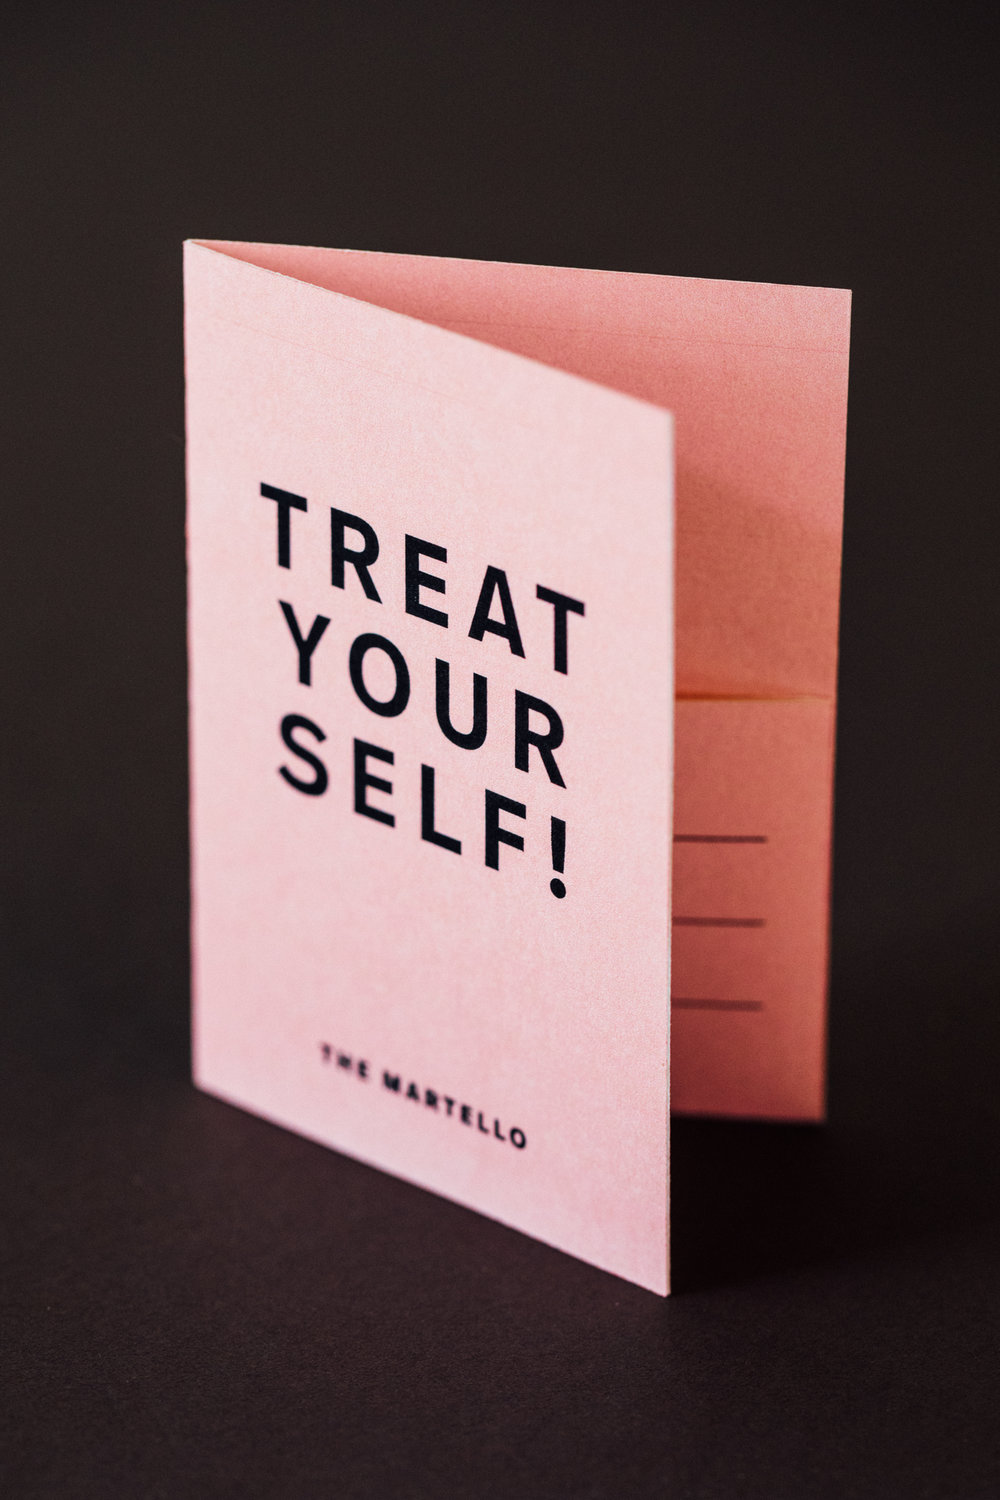 Gift card design for The Martello, by brennan & stevens